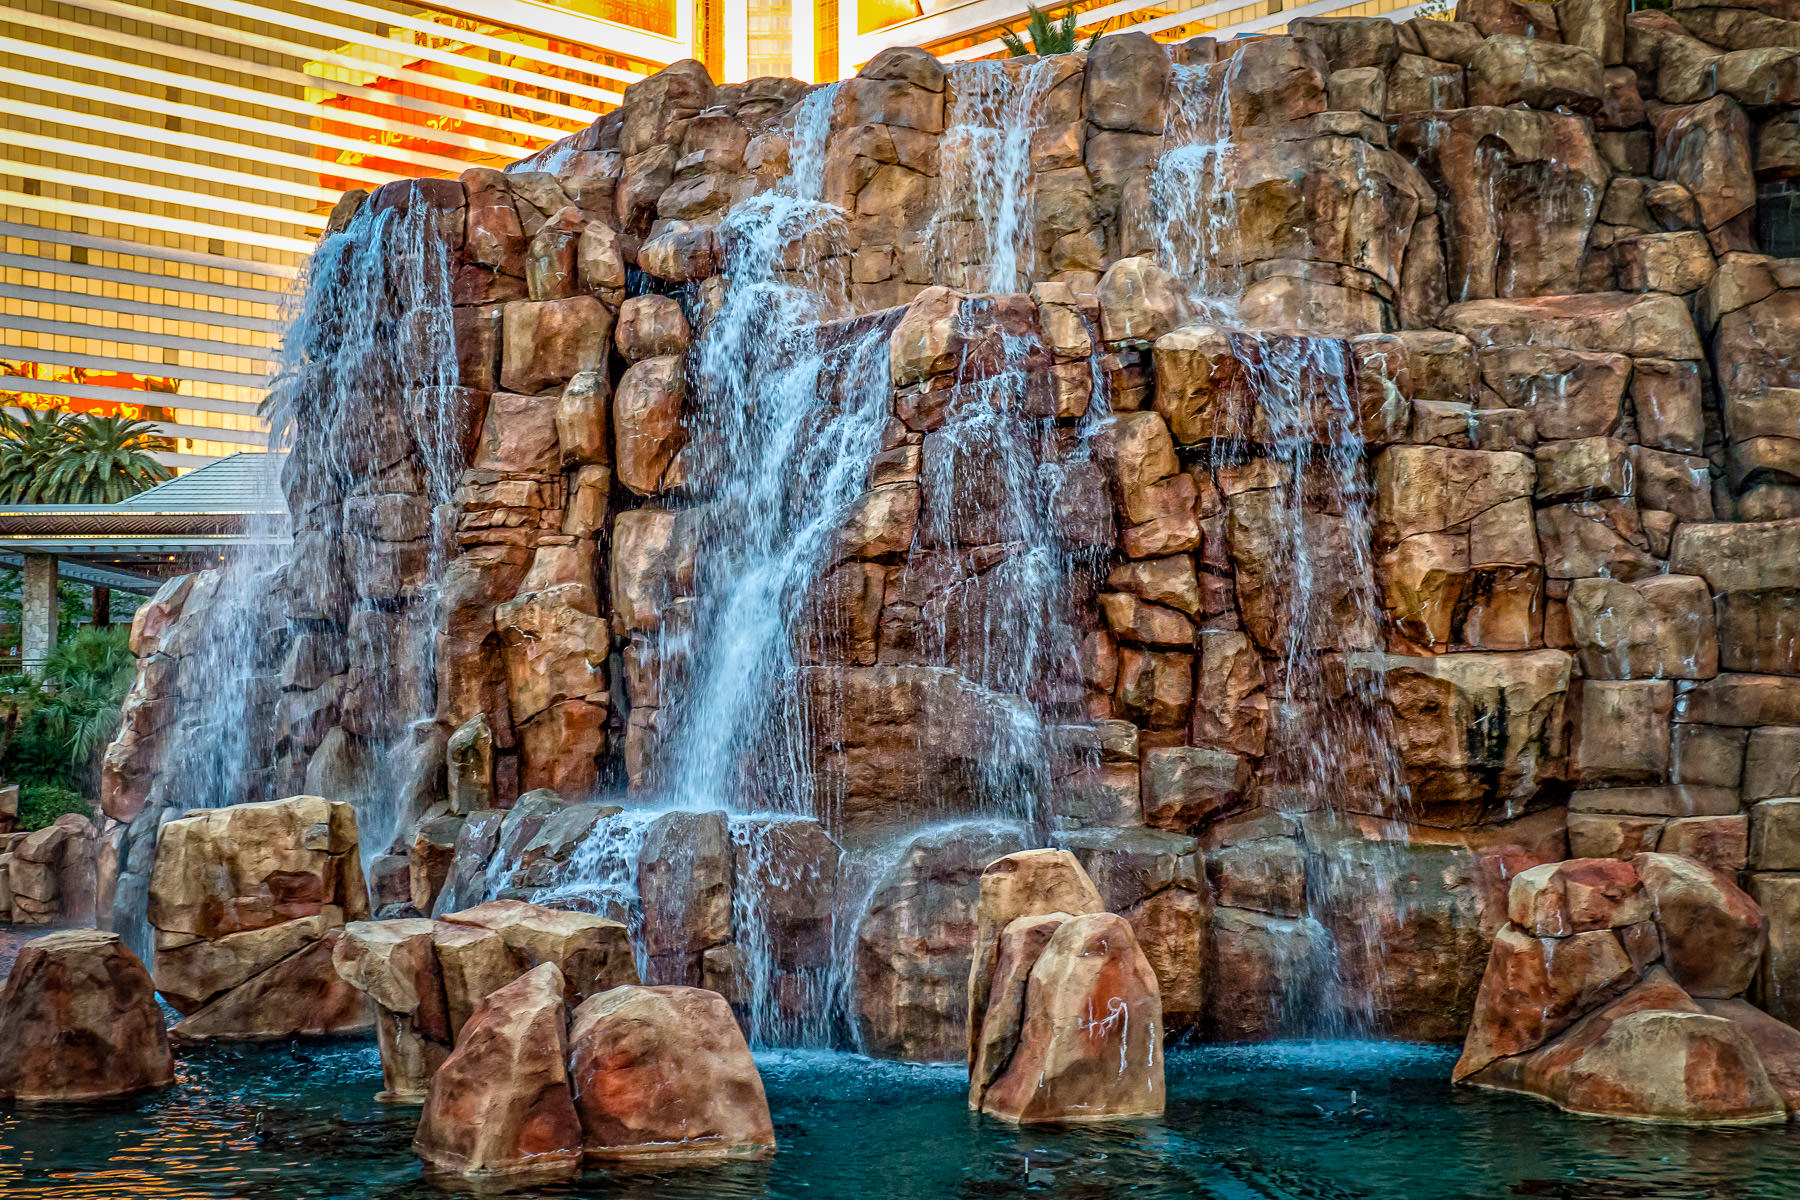 Waterfalls at The Mirage Hotel & Casino, Las Vegas.